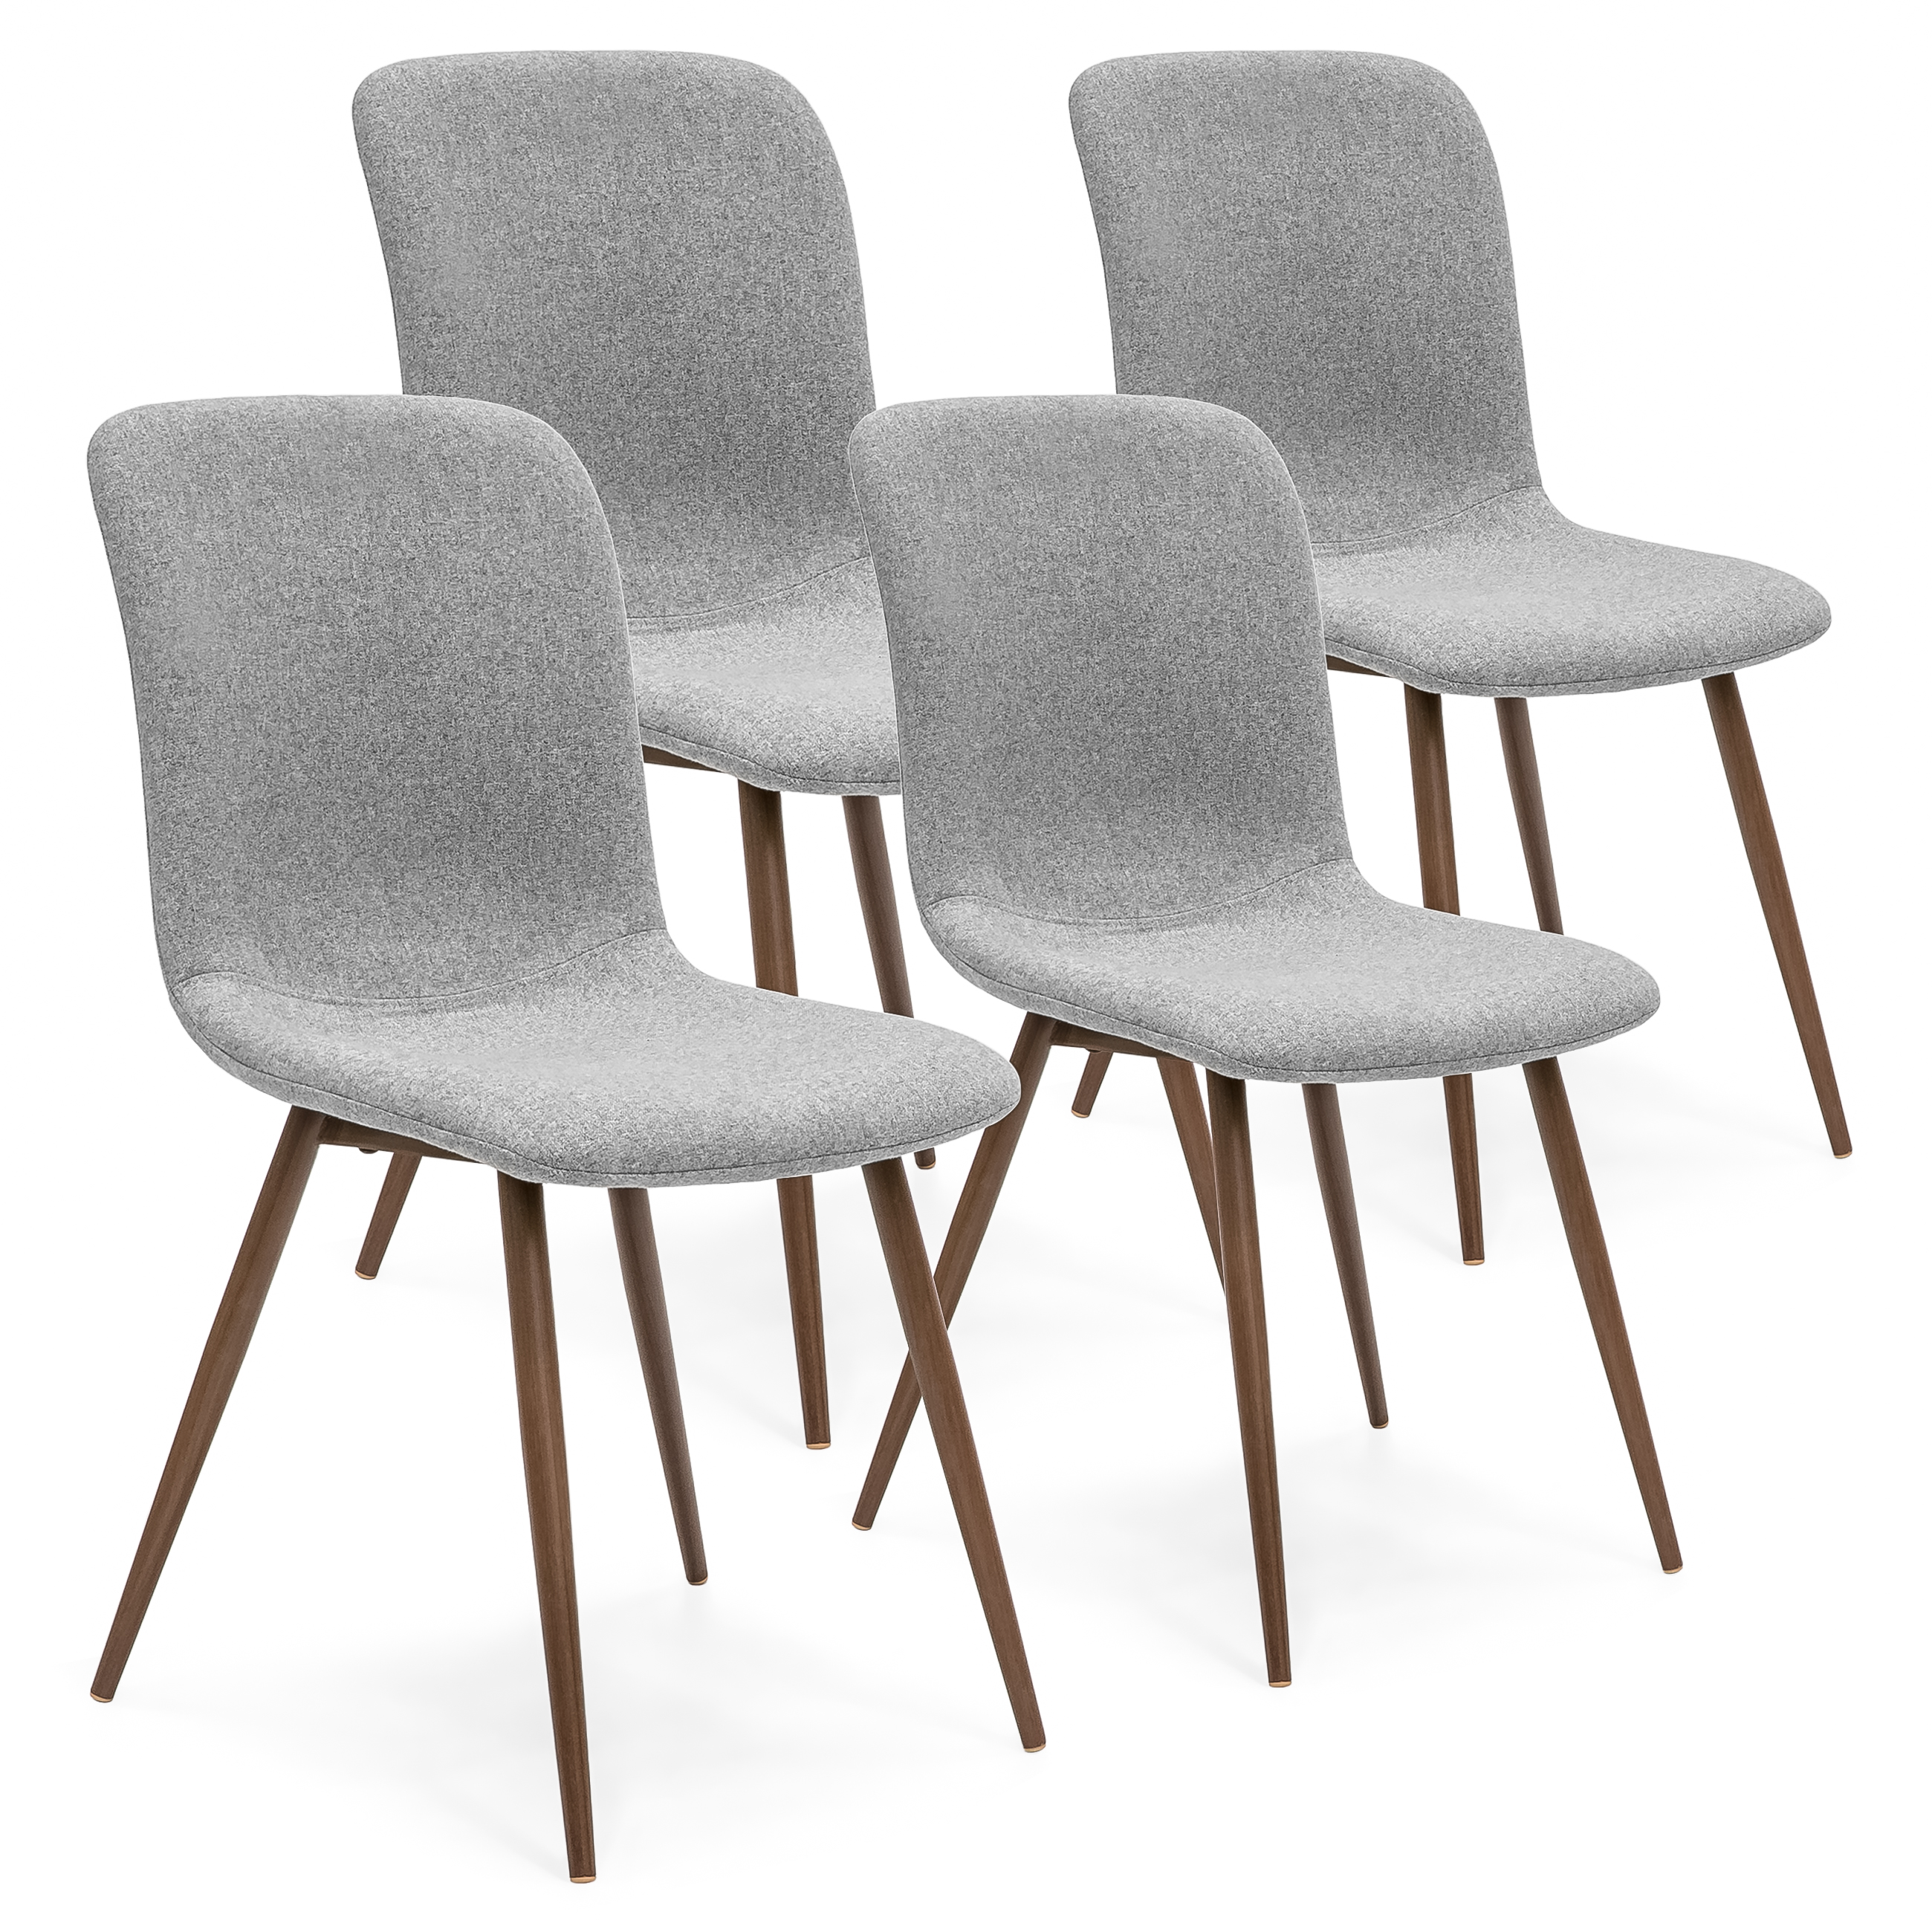 4 dining room chairs kitchen ikea table best choice products set of midcentury modern dining room chairs w fabric of